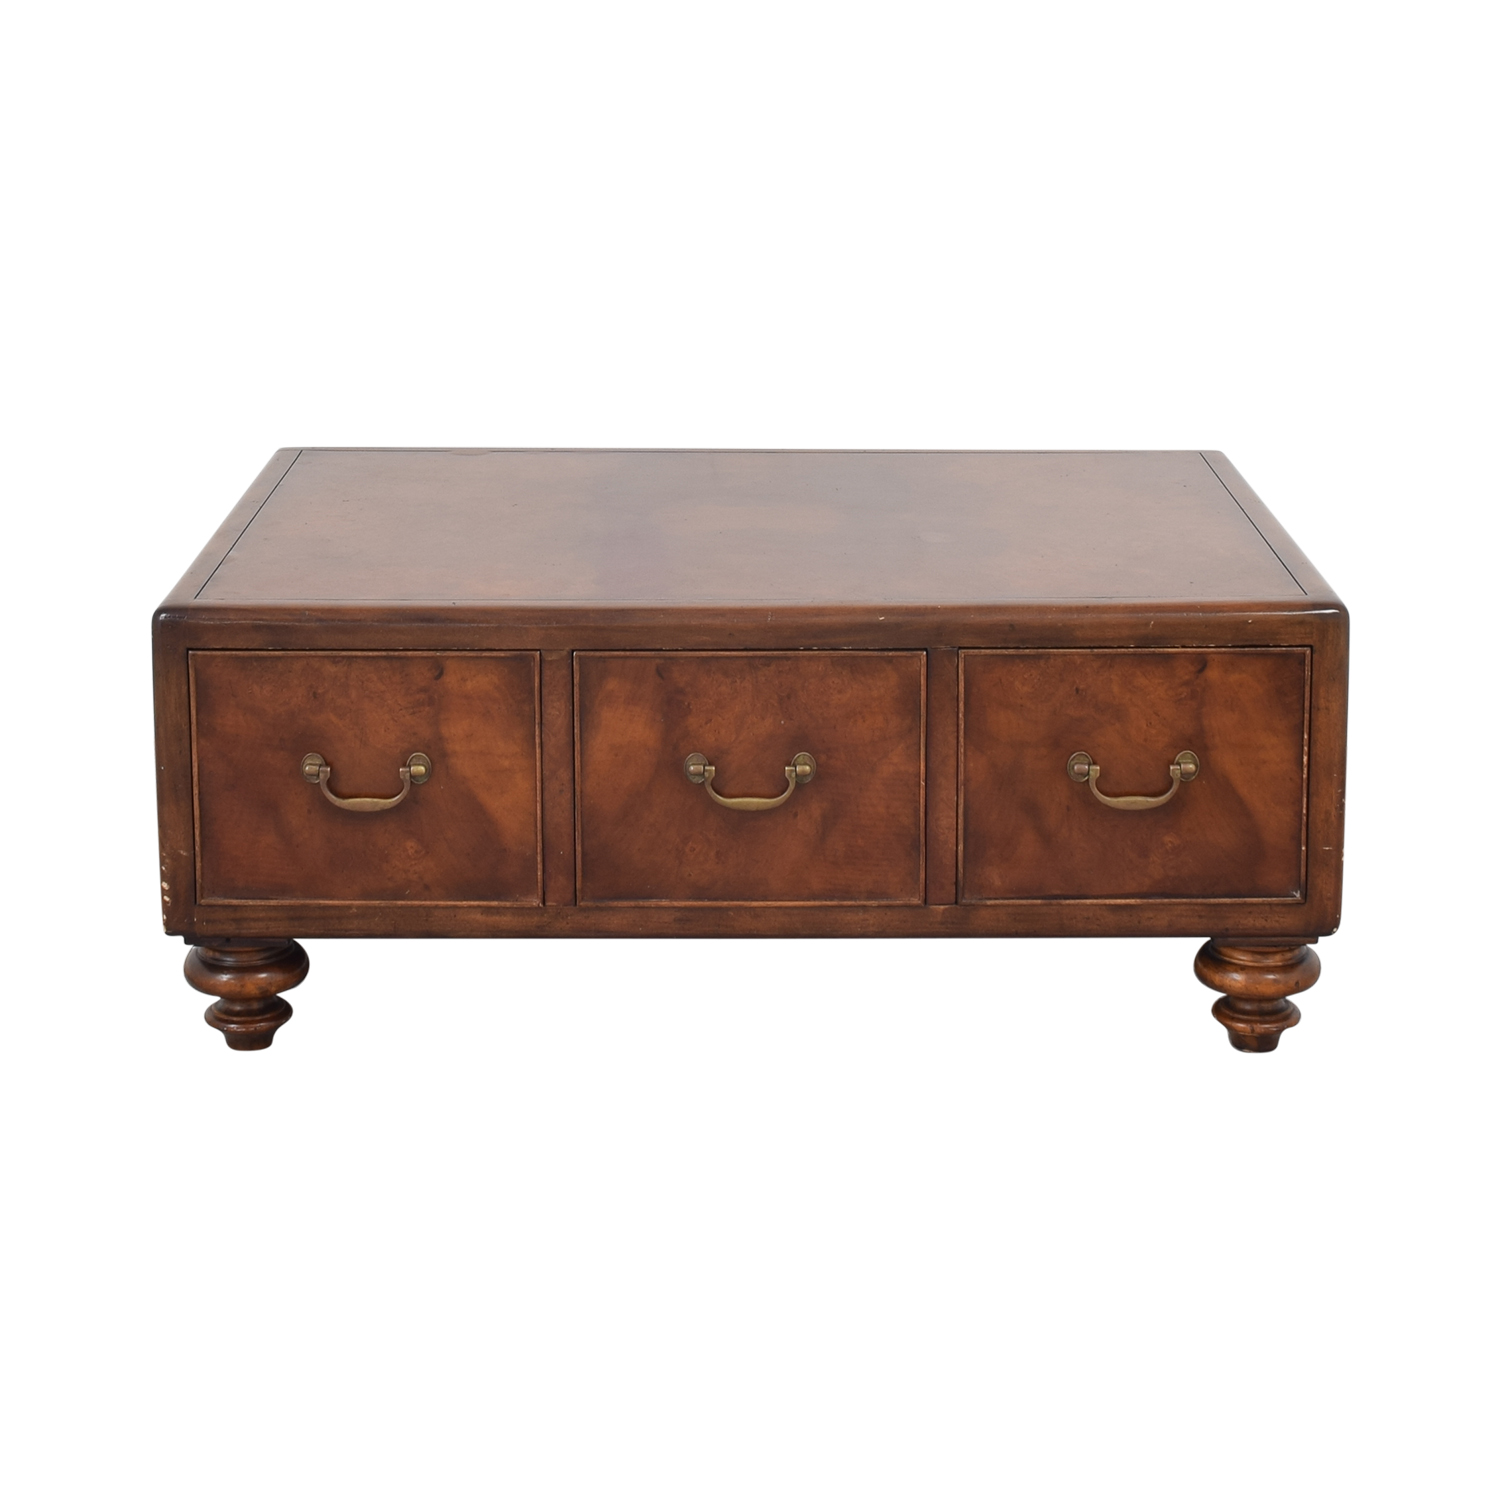 Thomasville Thomasville Ernest Hemingway Three Drawer Coffee Table Tables